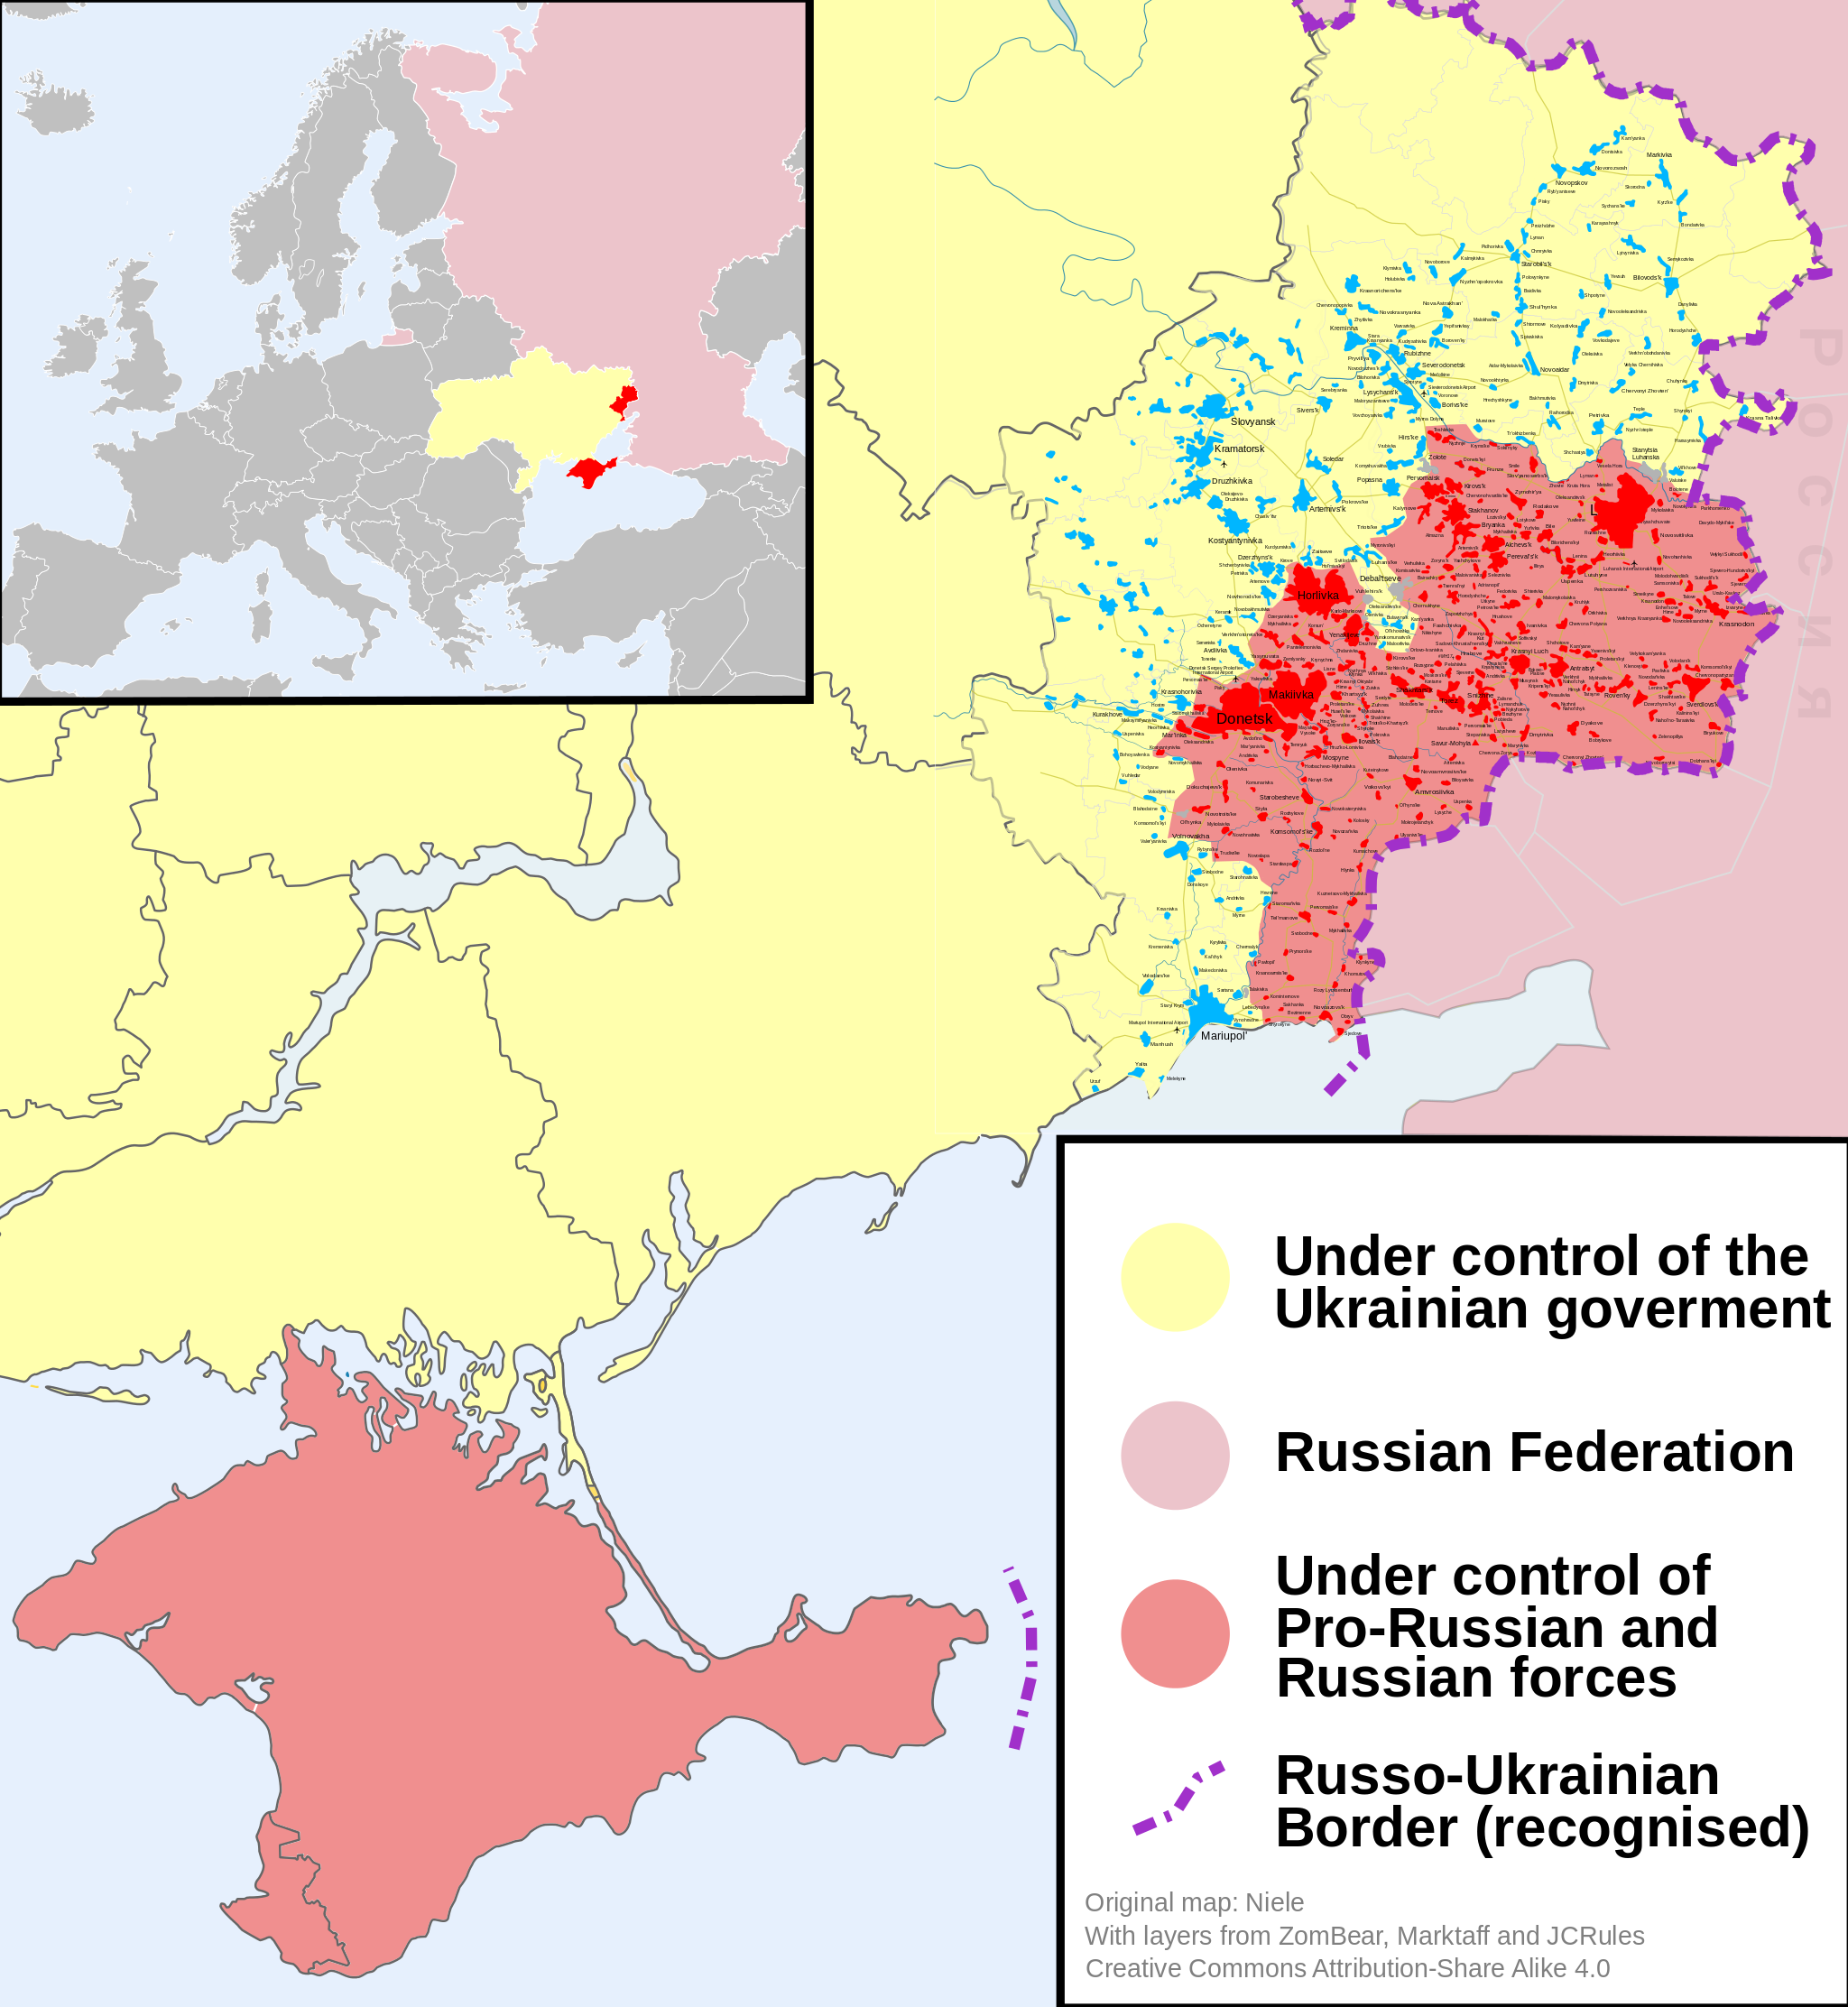 RUSSIAN INCURSION INTO UKRAINIAN TERRITORY, AS OF SEPTEMBER 2014. CREDIT: By Niele (Own work) [CC BY-SA 4.0 (http://creativecommons.org/licenses/by-sa/4.0)], via Wikimedia Commons.